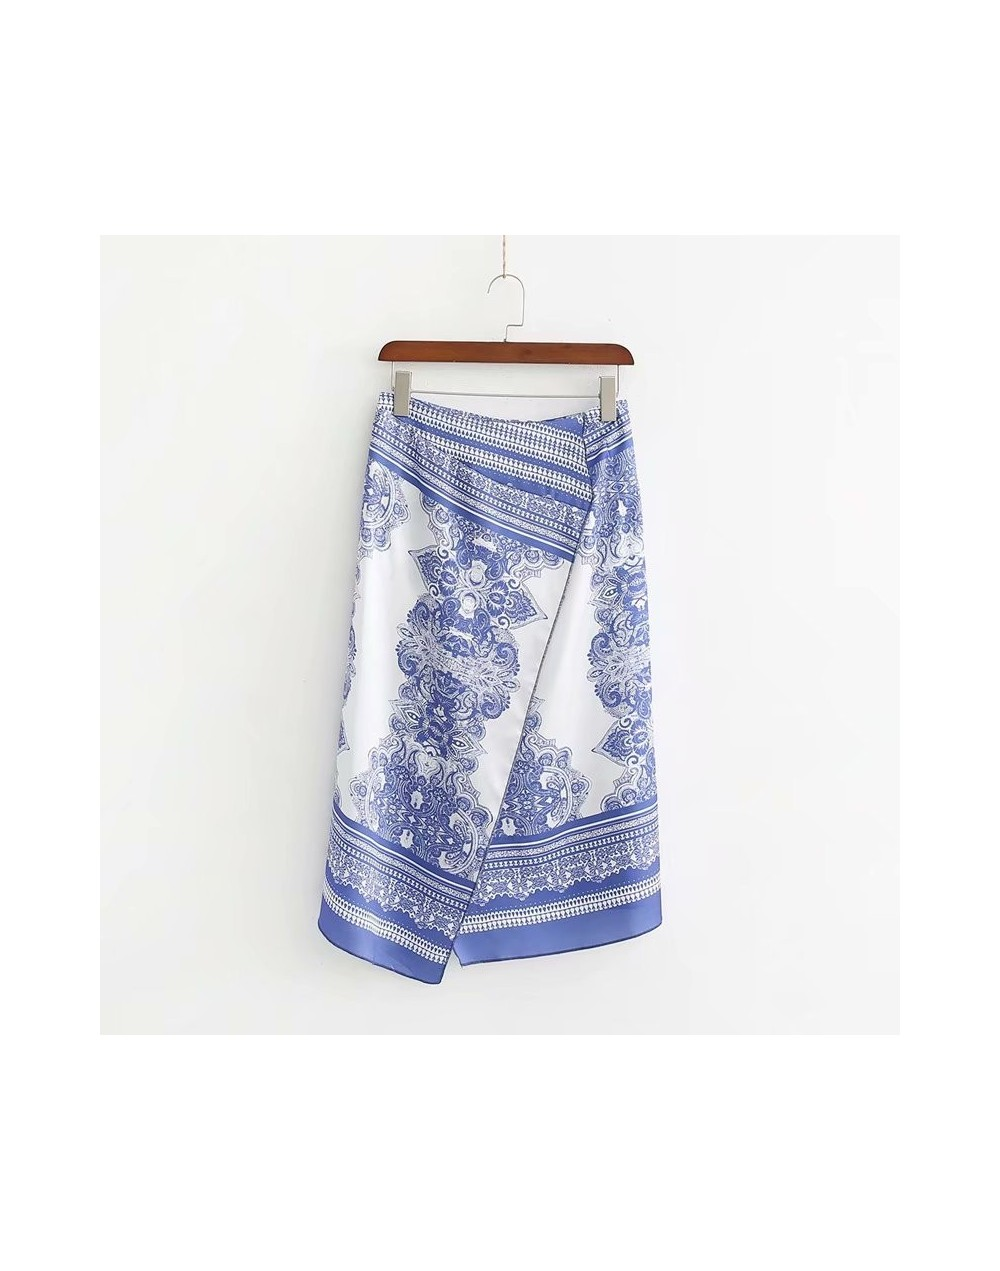 New arrival The European and American fashion printing skirt XD45-2280 - see chart - 424167744043